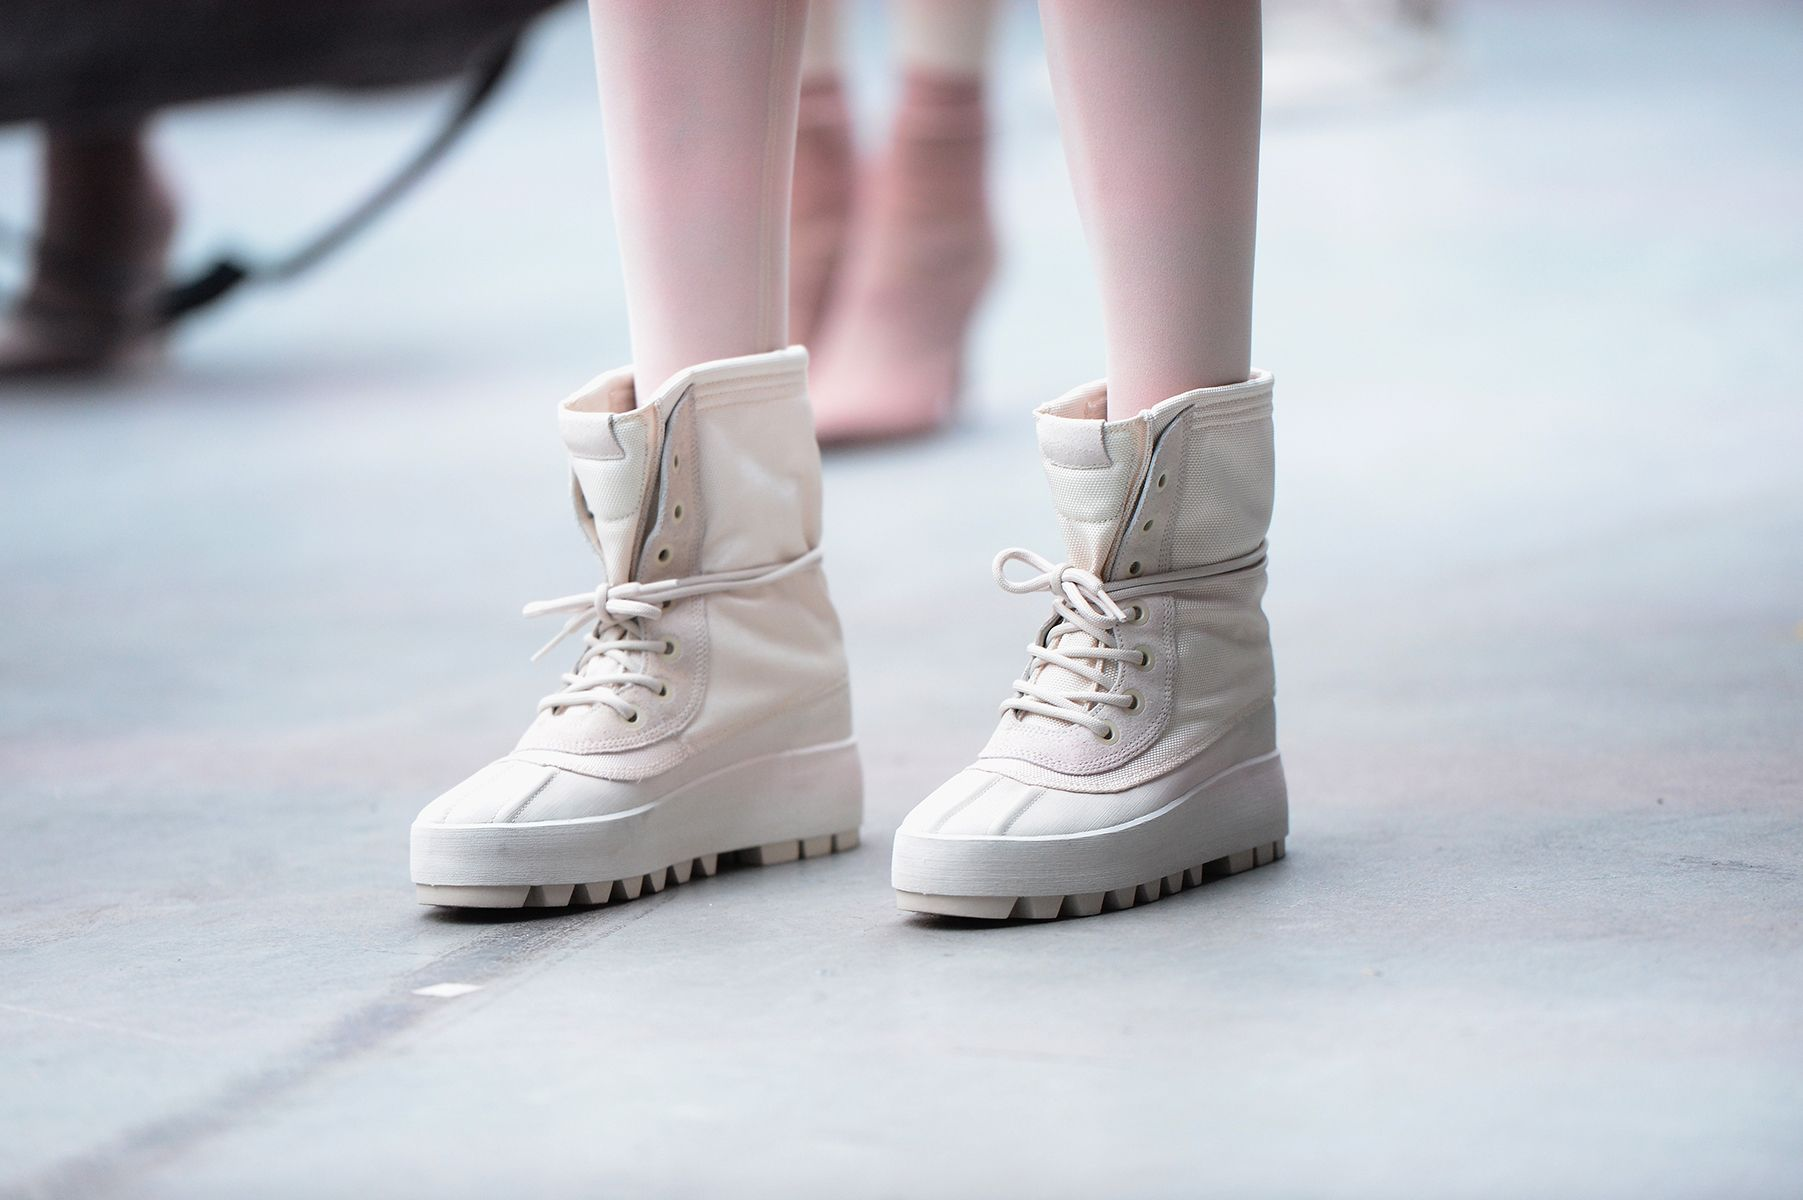 Kanye West S High Tops For Adidas Are Next Year S Must Have Winter Boots Adidas Boots Sneakers Kanye West Adidas Yeezy